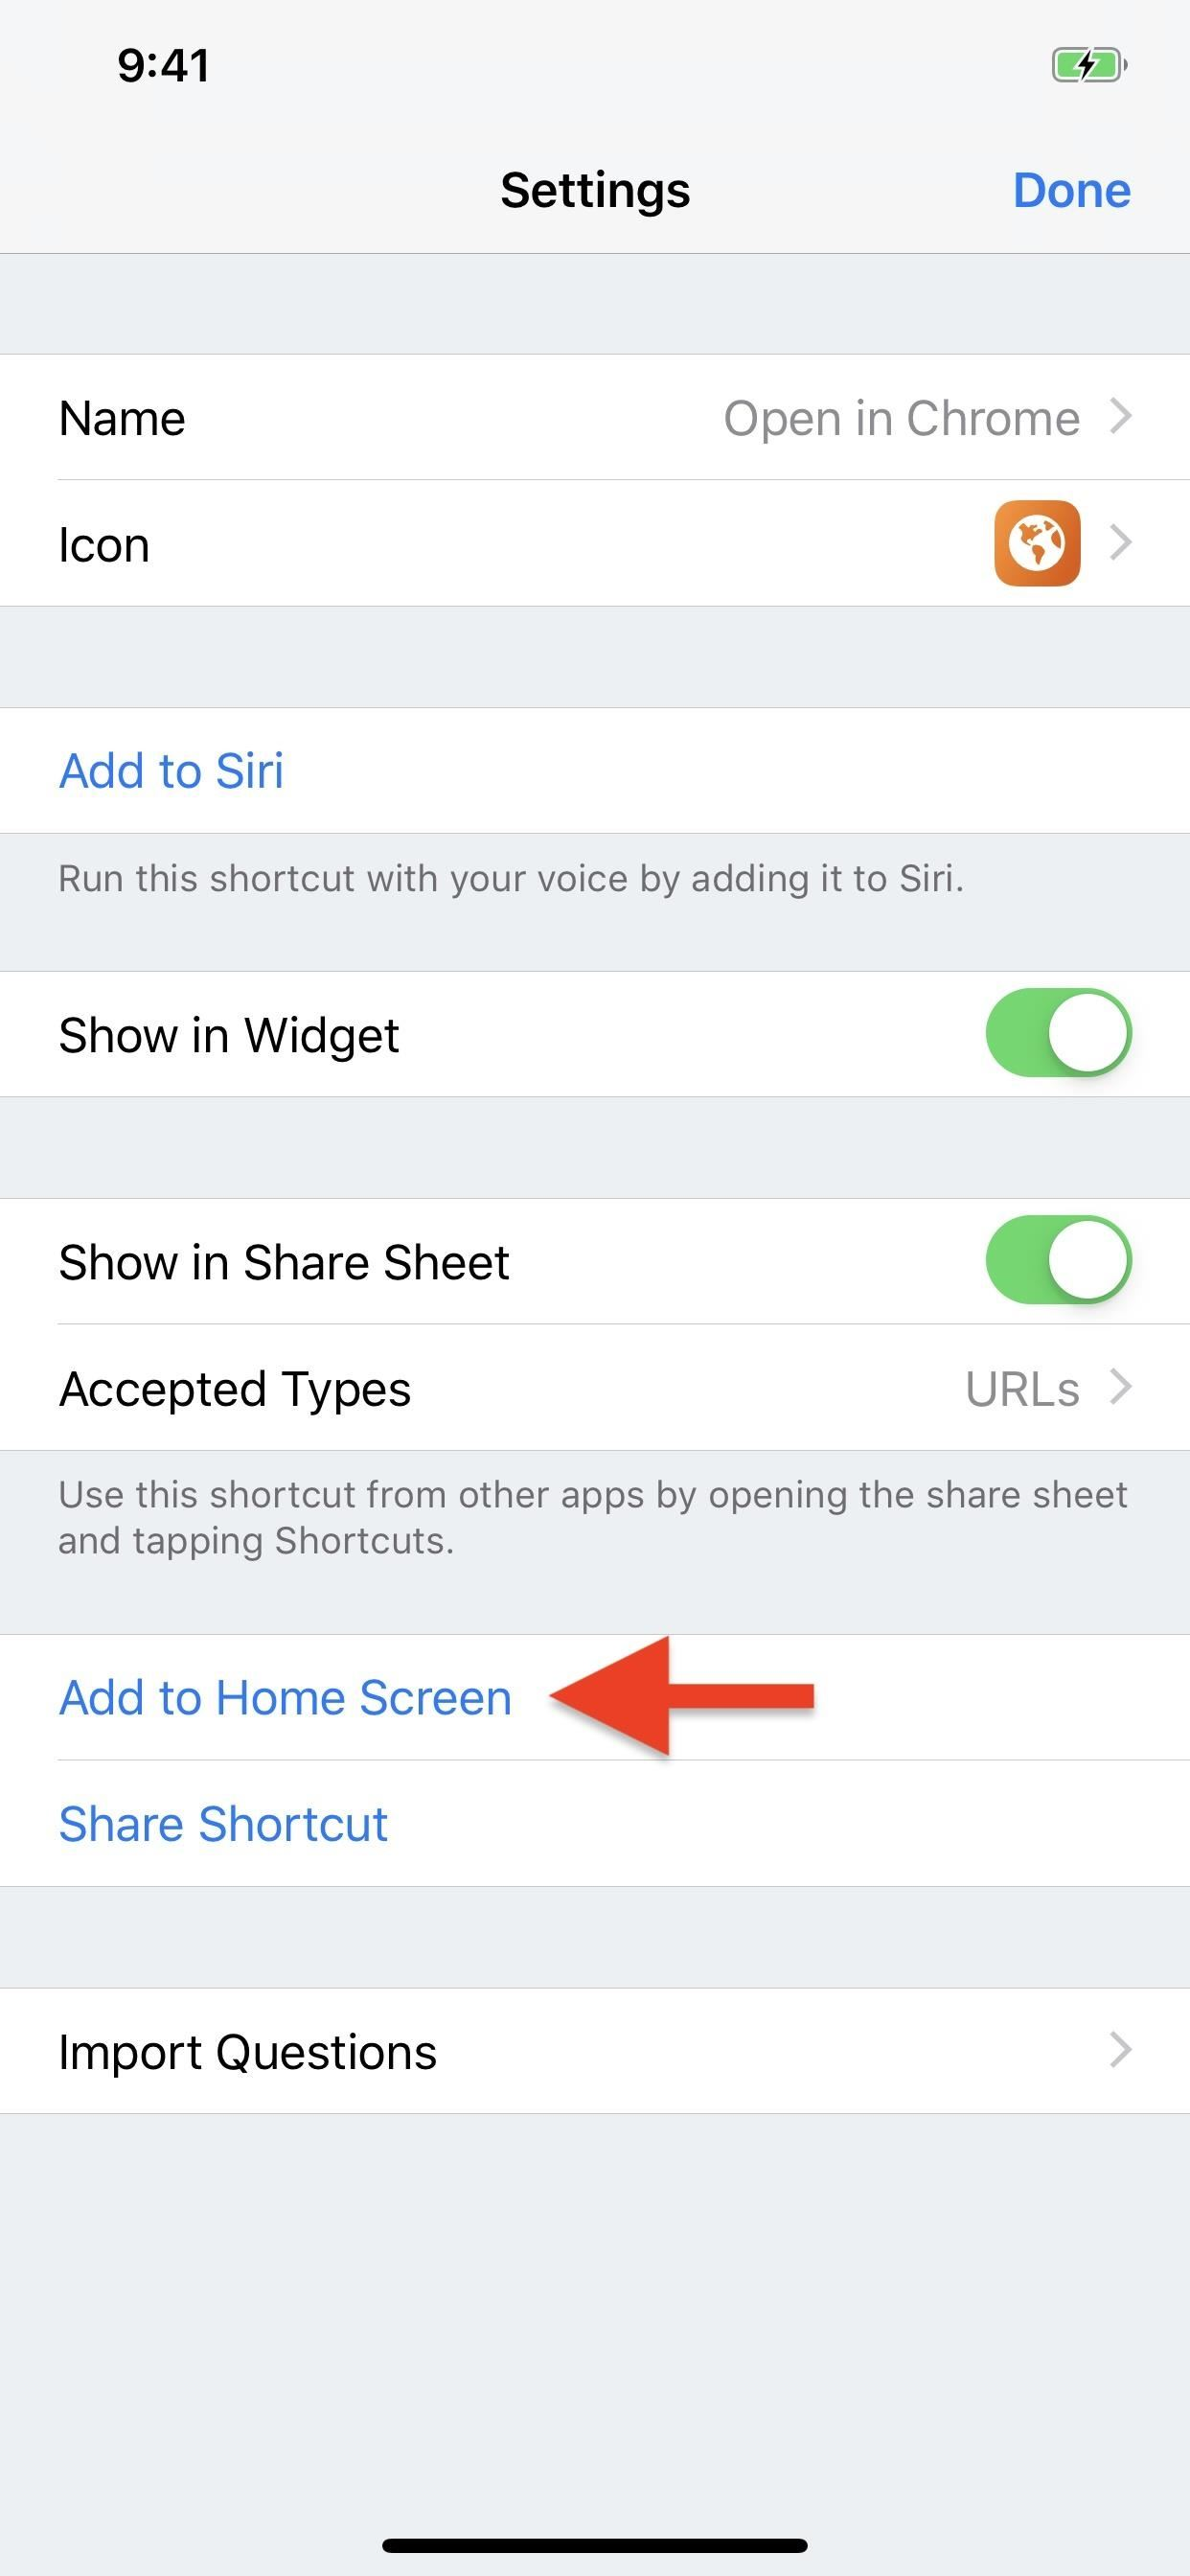 How to Open Links in Chrome Instead of Safari on Your iPhone Using the Shortcuts App